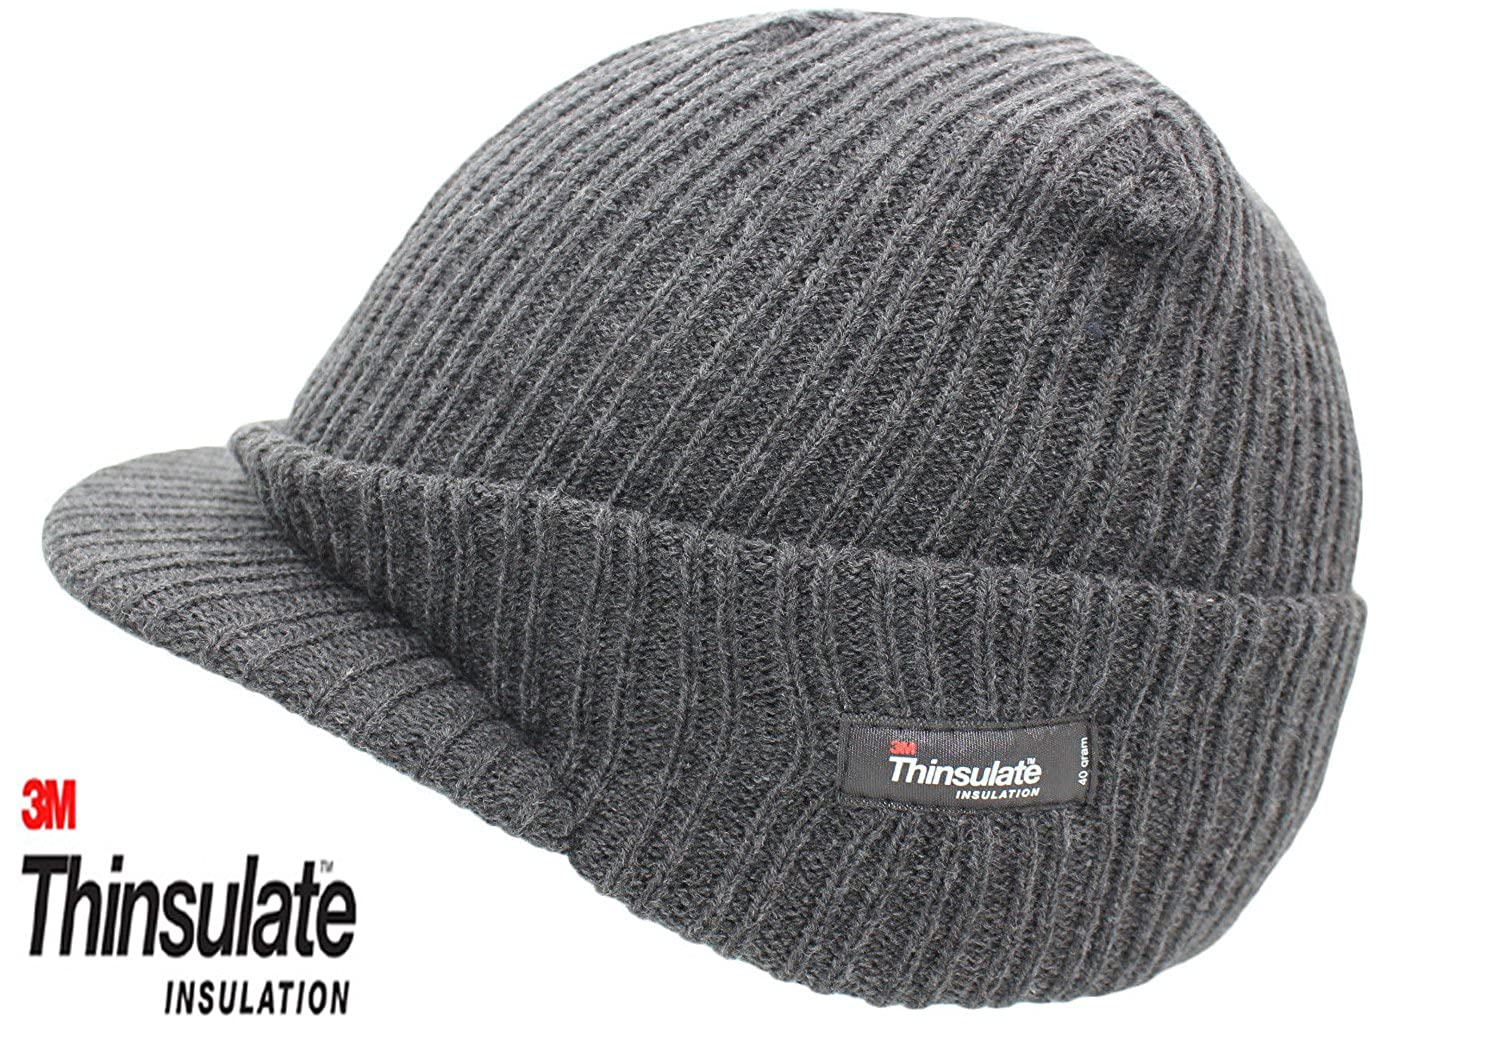 427c2f2d72d8d8 Mens Woolly Army Beanie Military Hat Cap Jeep Peaked Thinsulate Grey New:  Amazon.co.uk: Clothing